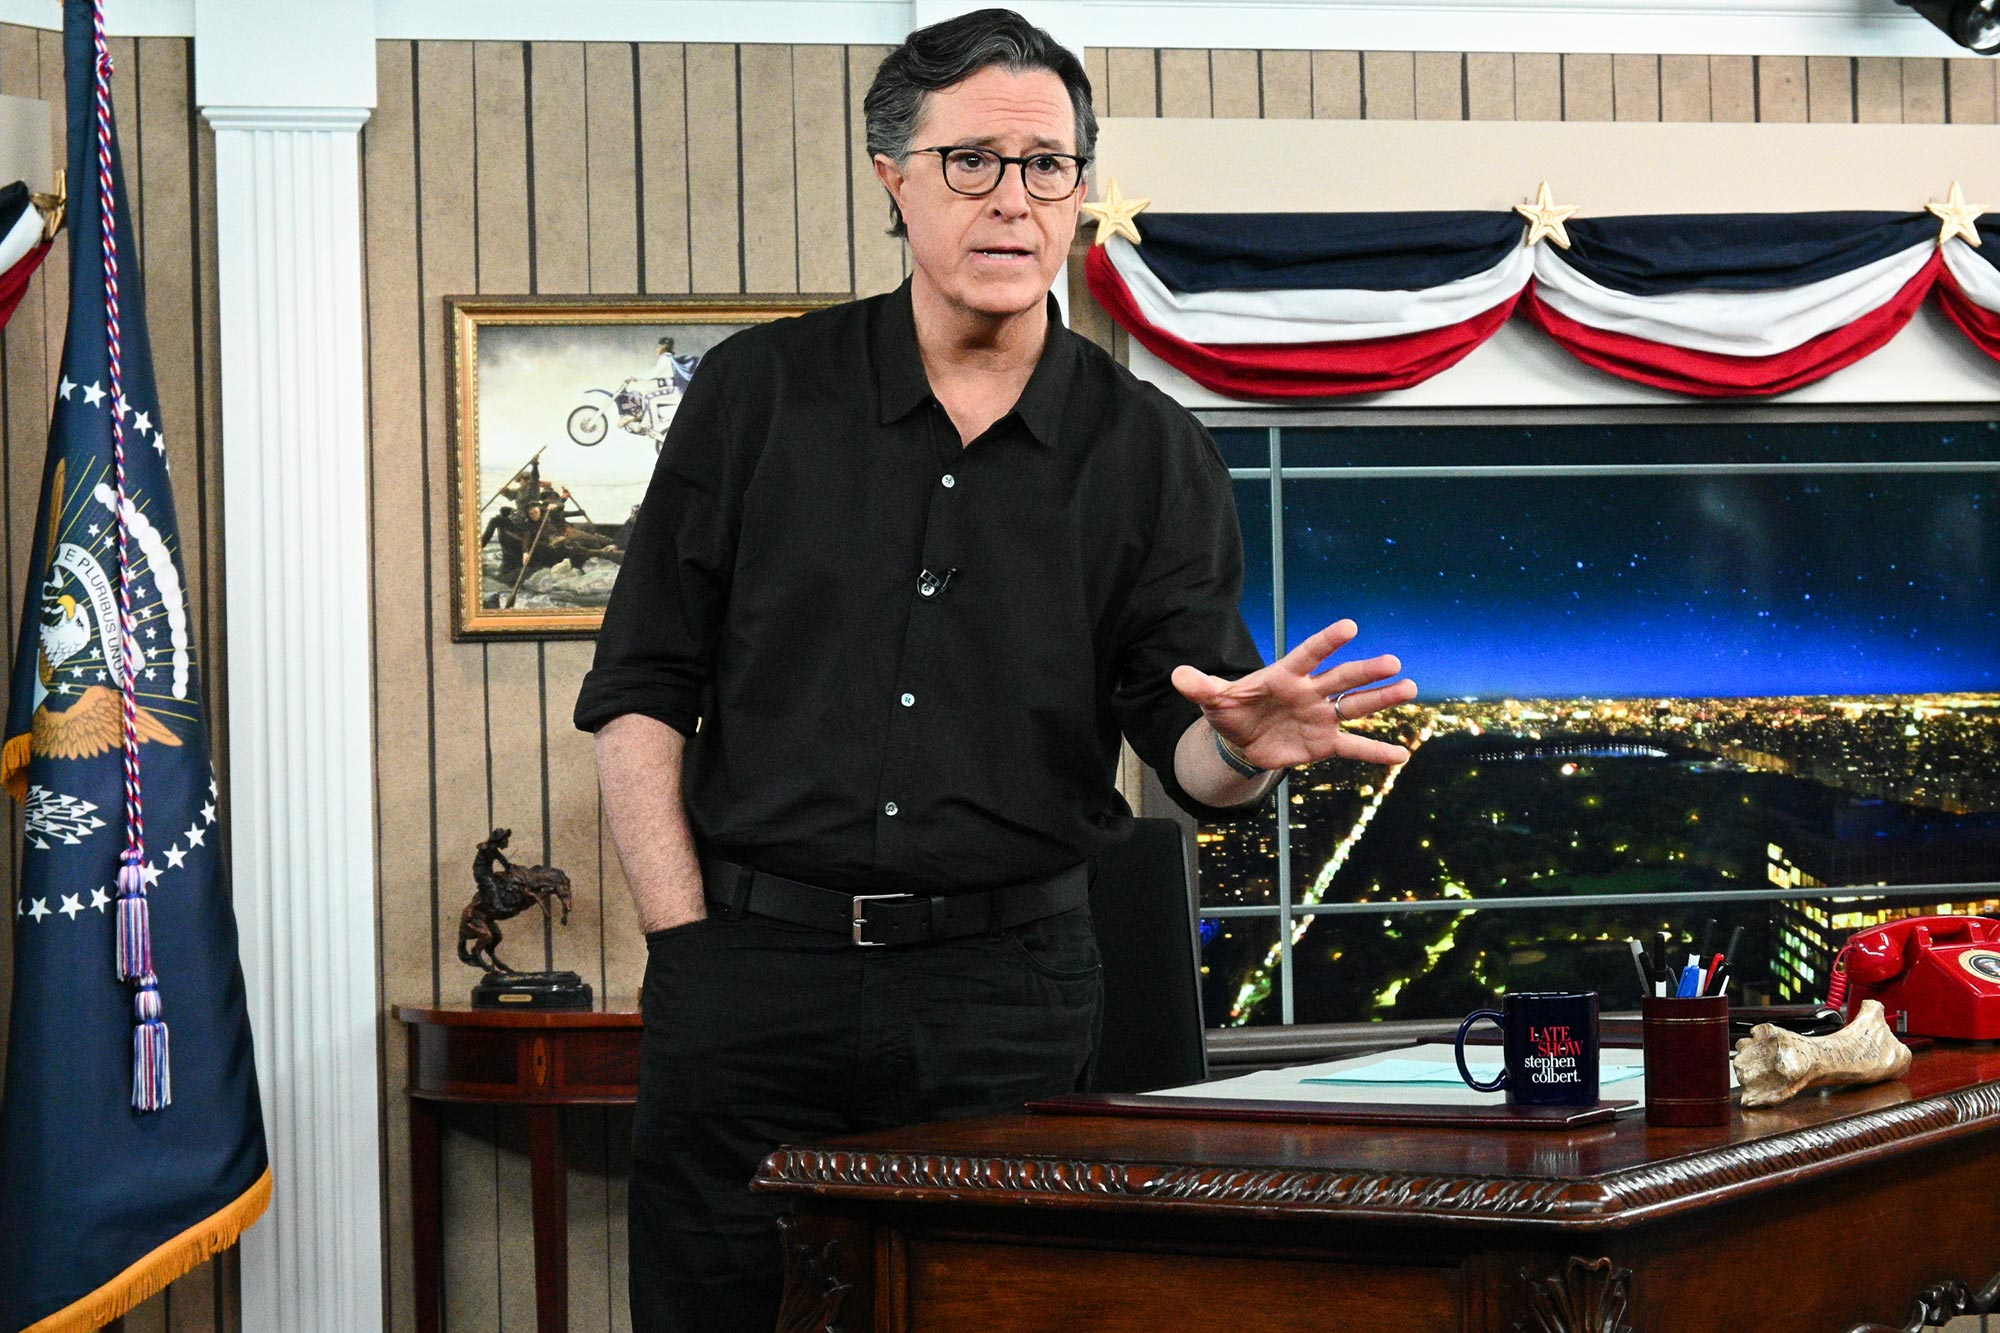 A Late Show with Stephen Colbert